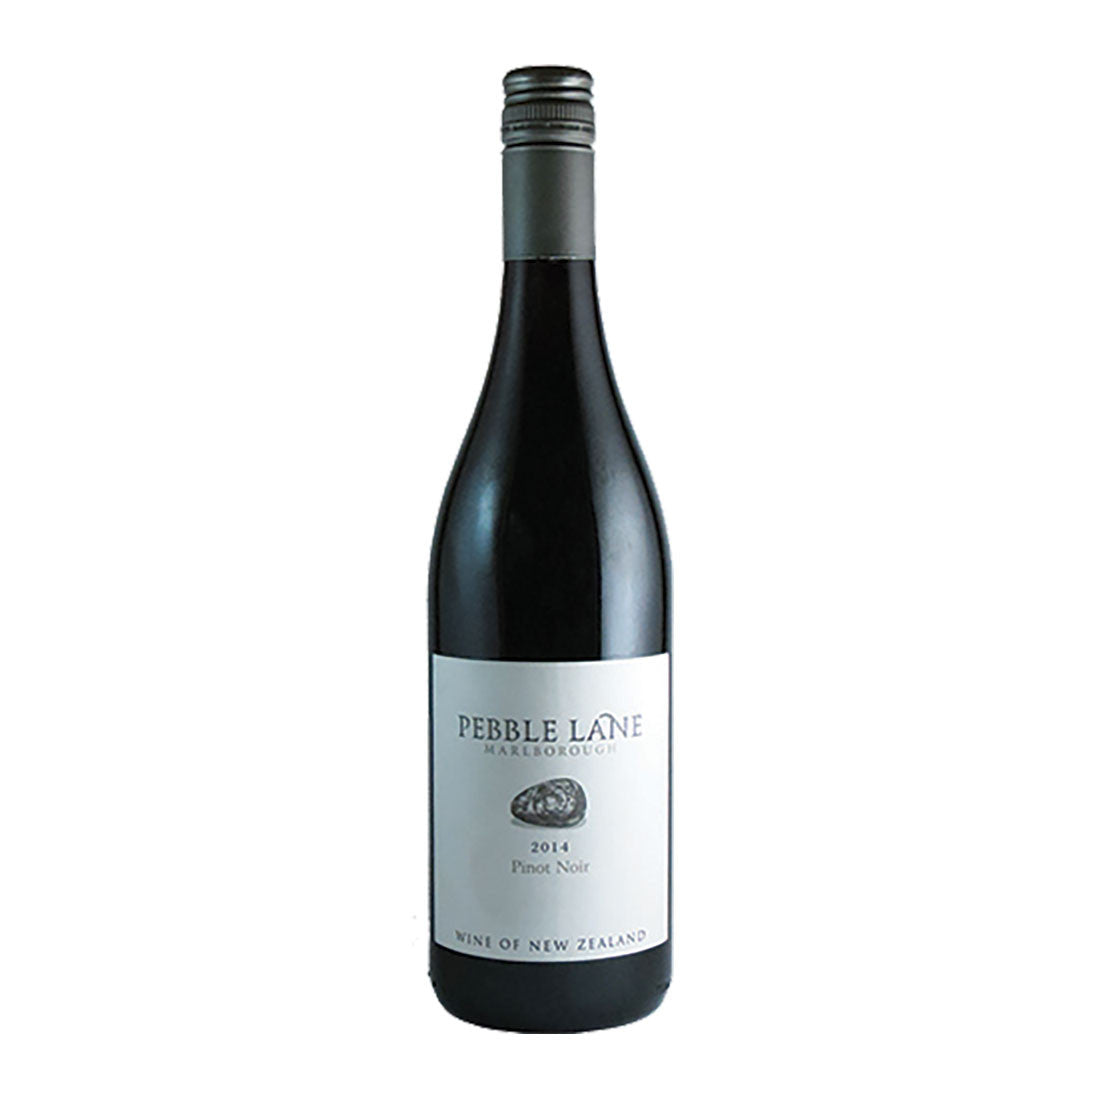 Pebble Lane Pinot Noir -750ml Wine - Bevtools Bar and Beverage Tools | Alcohol and Liquor Delivery Makati, Metro Manila, Philippines